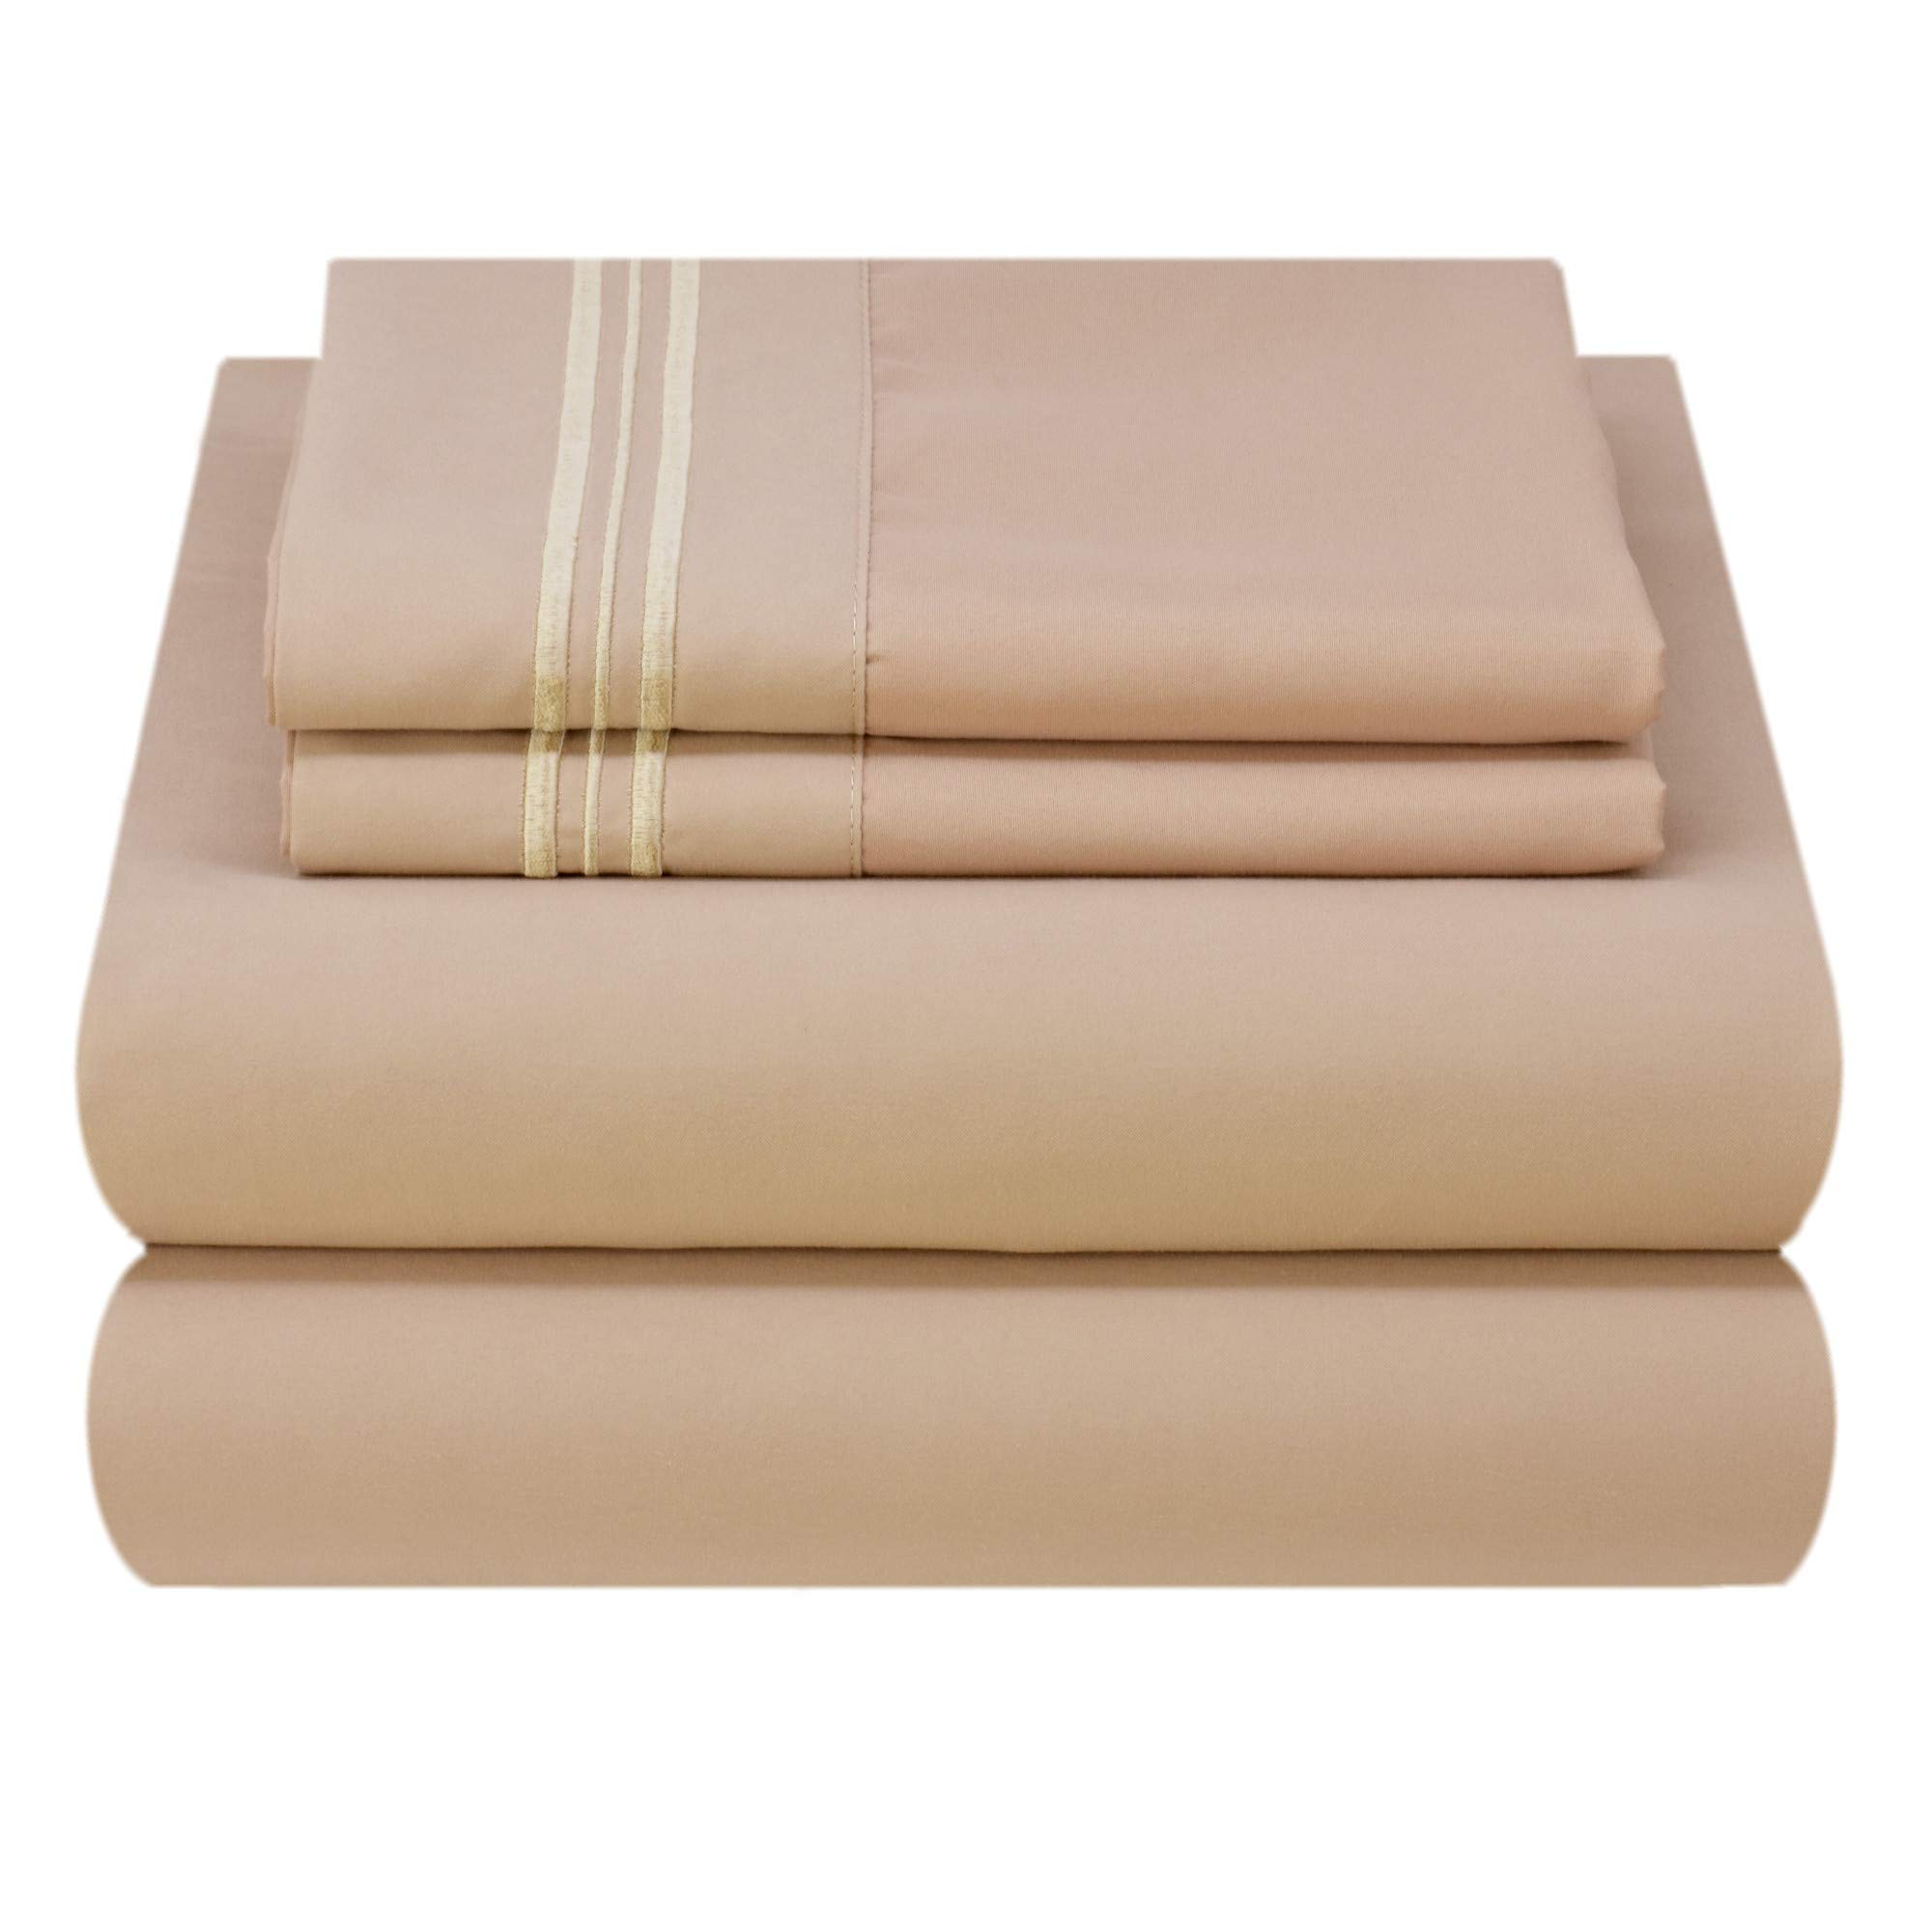 Mezzati Luxury Bed Sheet Set - Soft and Comfortable 1800 Prestige Collection - Brushed Microfiber Bedding (Cappuccino, Twin XL Size)